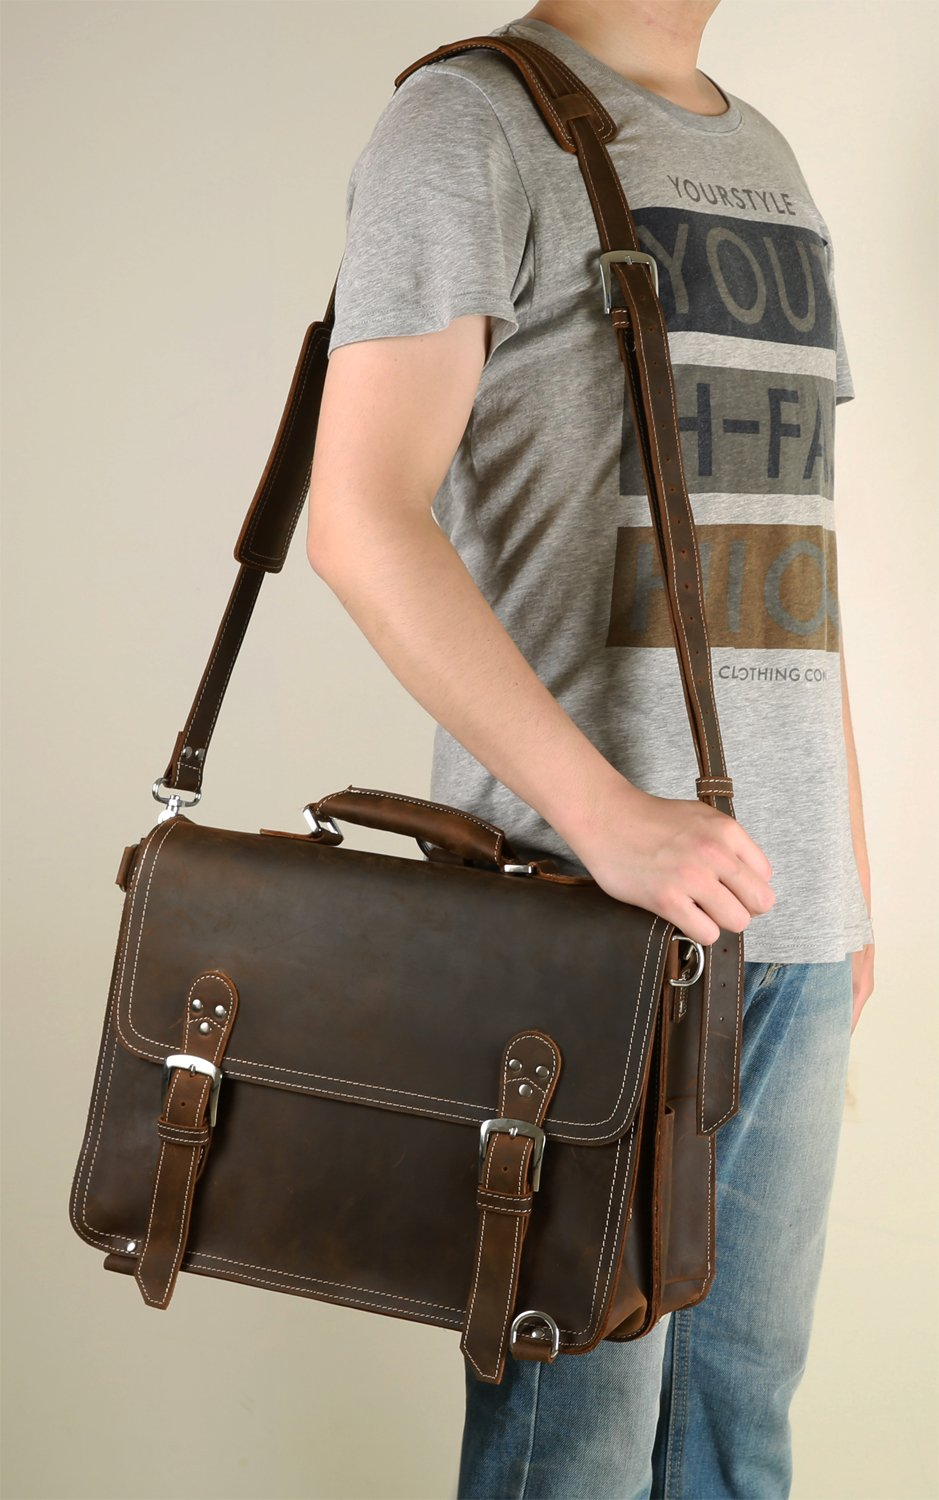 "Men's Messenger Bag Iswee Vintage Leather Briefcase for Men 14"" Laptop Bags Shoulder Handbags Backpack Christmas Gift (Dark Brown)"